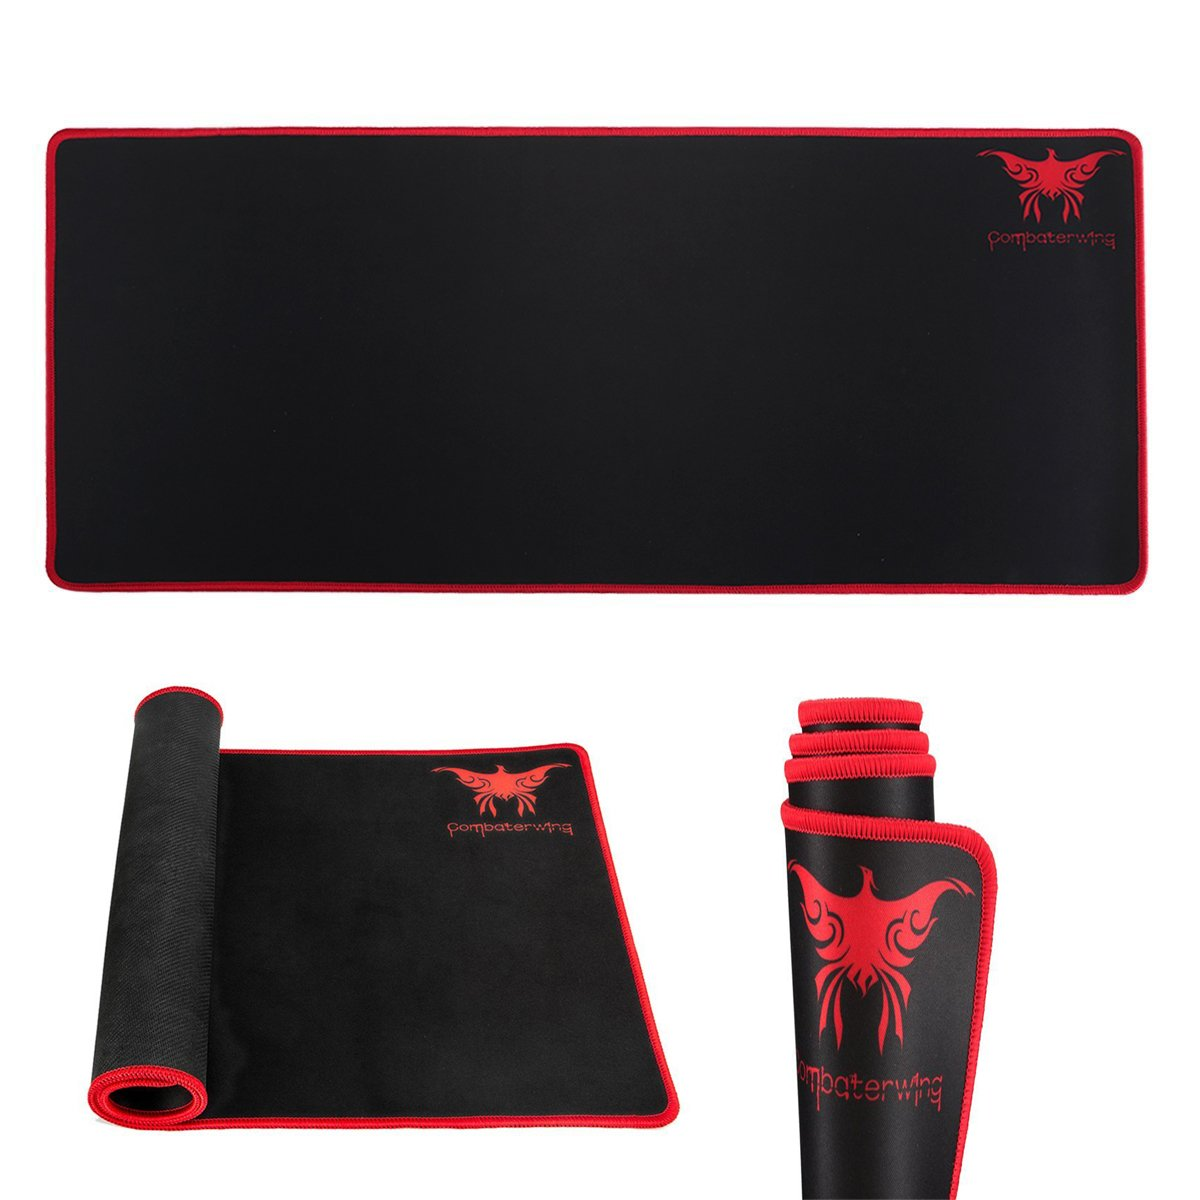 """Extended Gaming Mouse Mat,Za Kitane 27.56 X 11.81 X 0.08"""" Large Extension Mouse Pad,Functional Non Slip Rubber Base With Stitched Edges Mousepad,Waterproof Mousemat Perfect For Computer Desk,Gaming by Amazon"""